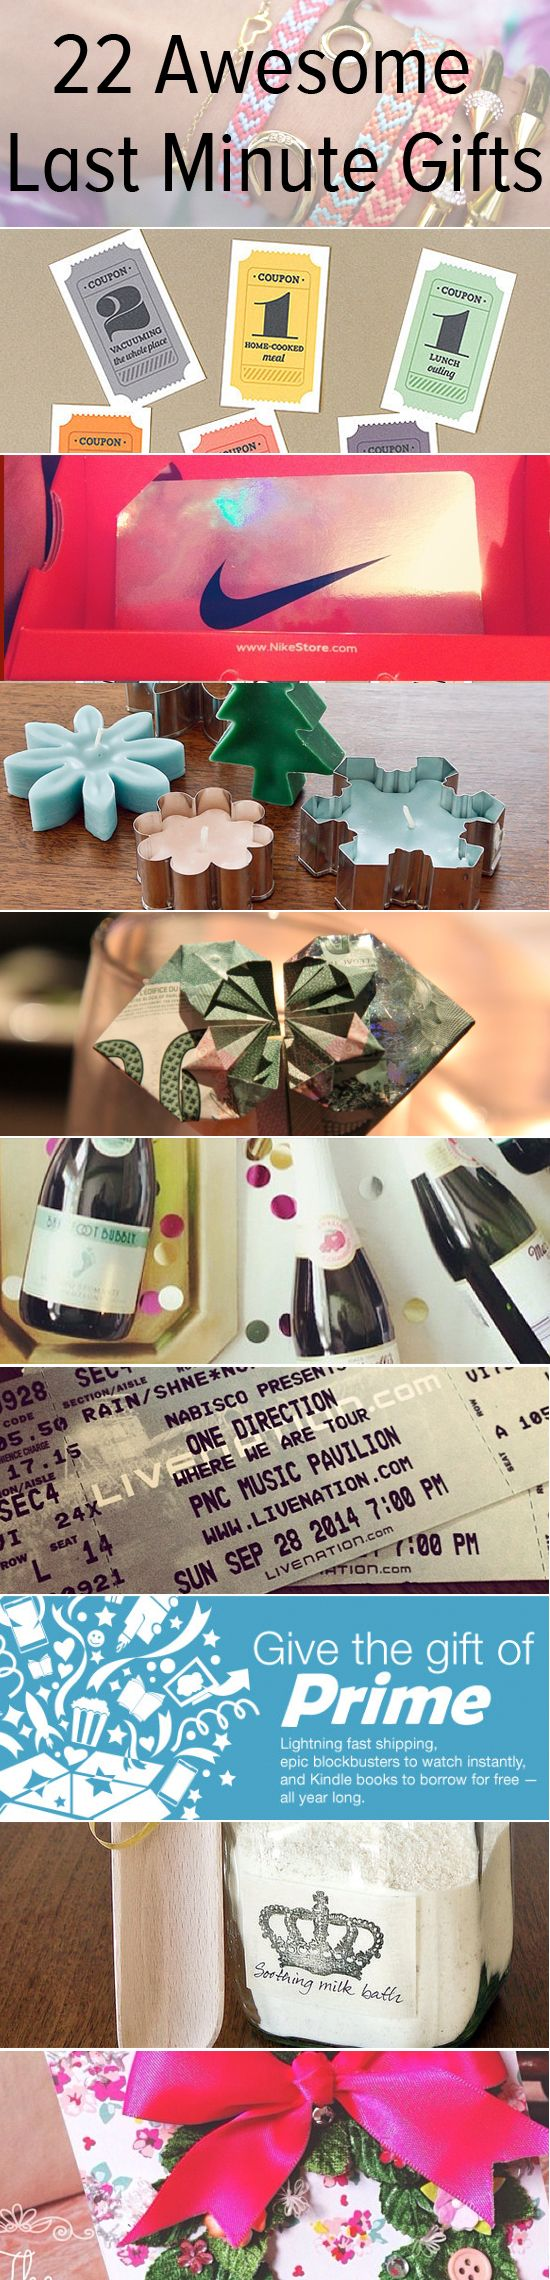 17 best ideas about last minute birthday gifts on for Last minute diy birthday gifts for dad